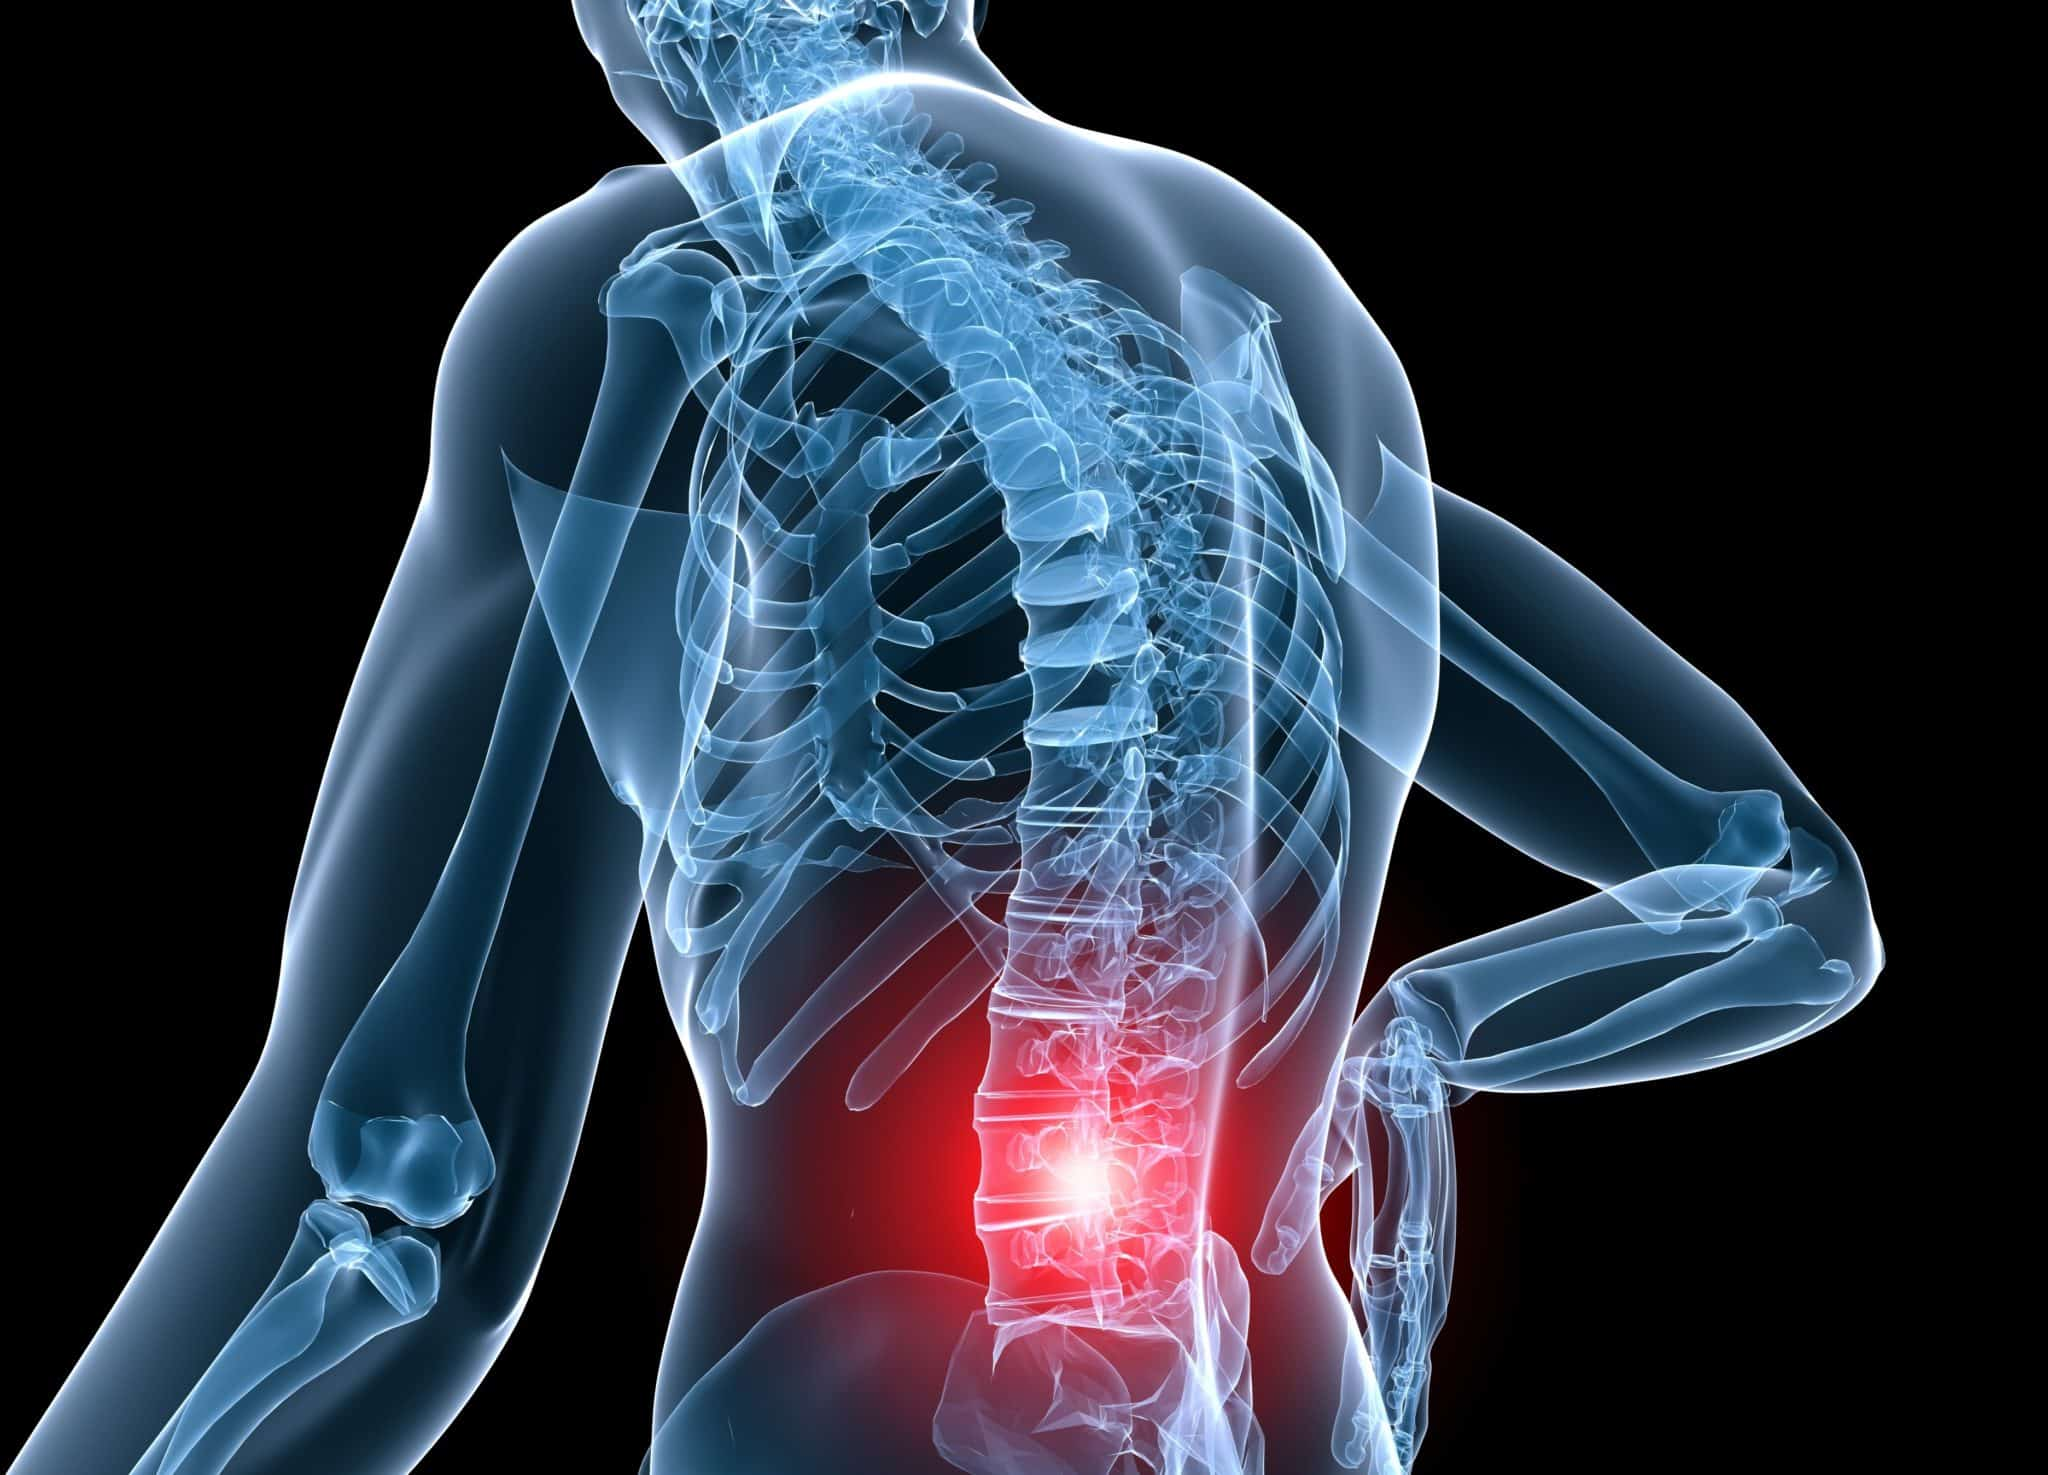 chiropractic care and back pain to provide relief for chronic back pain